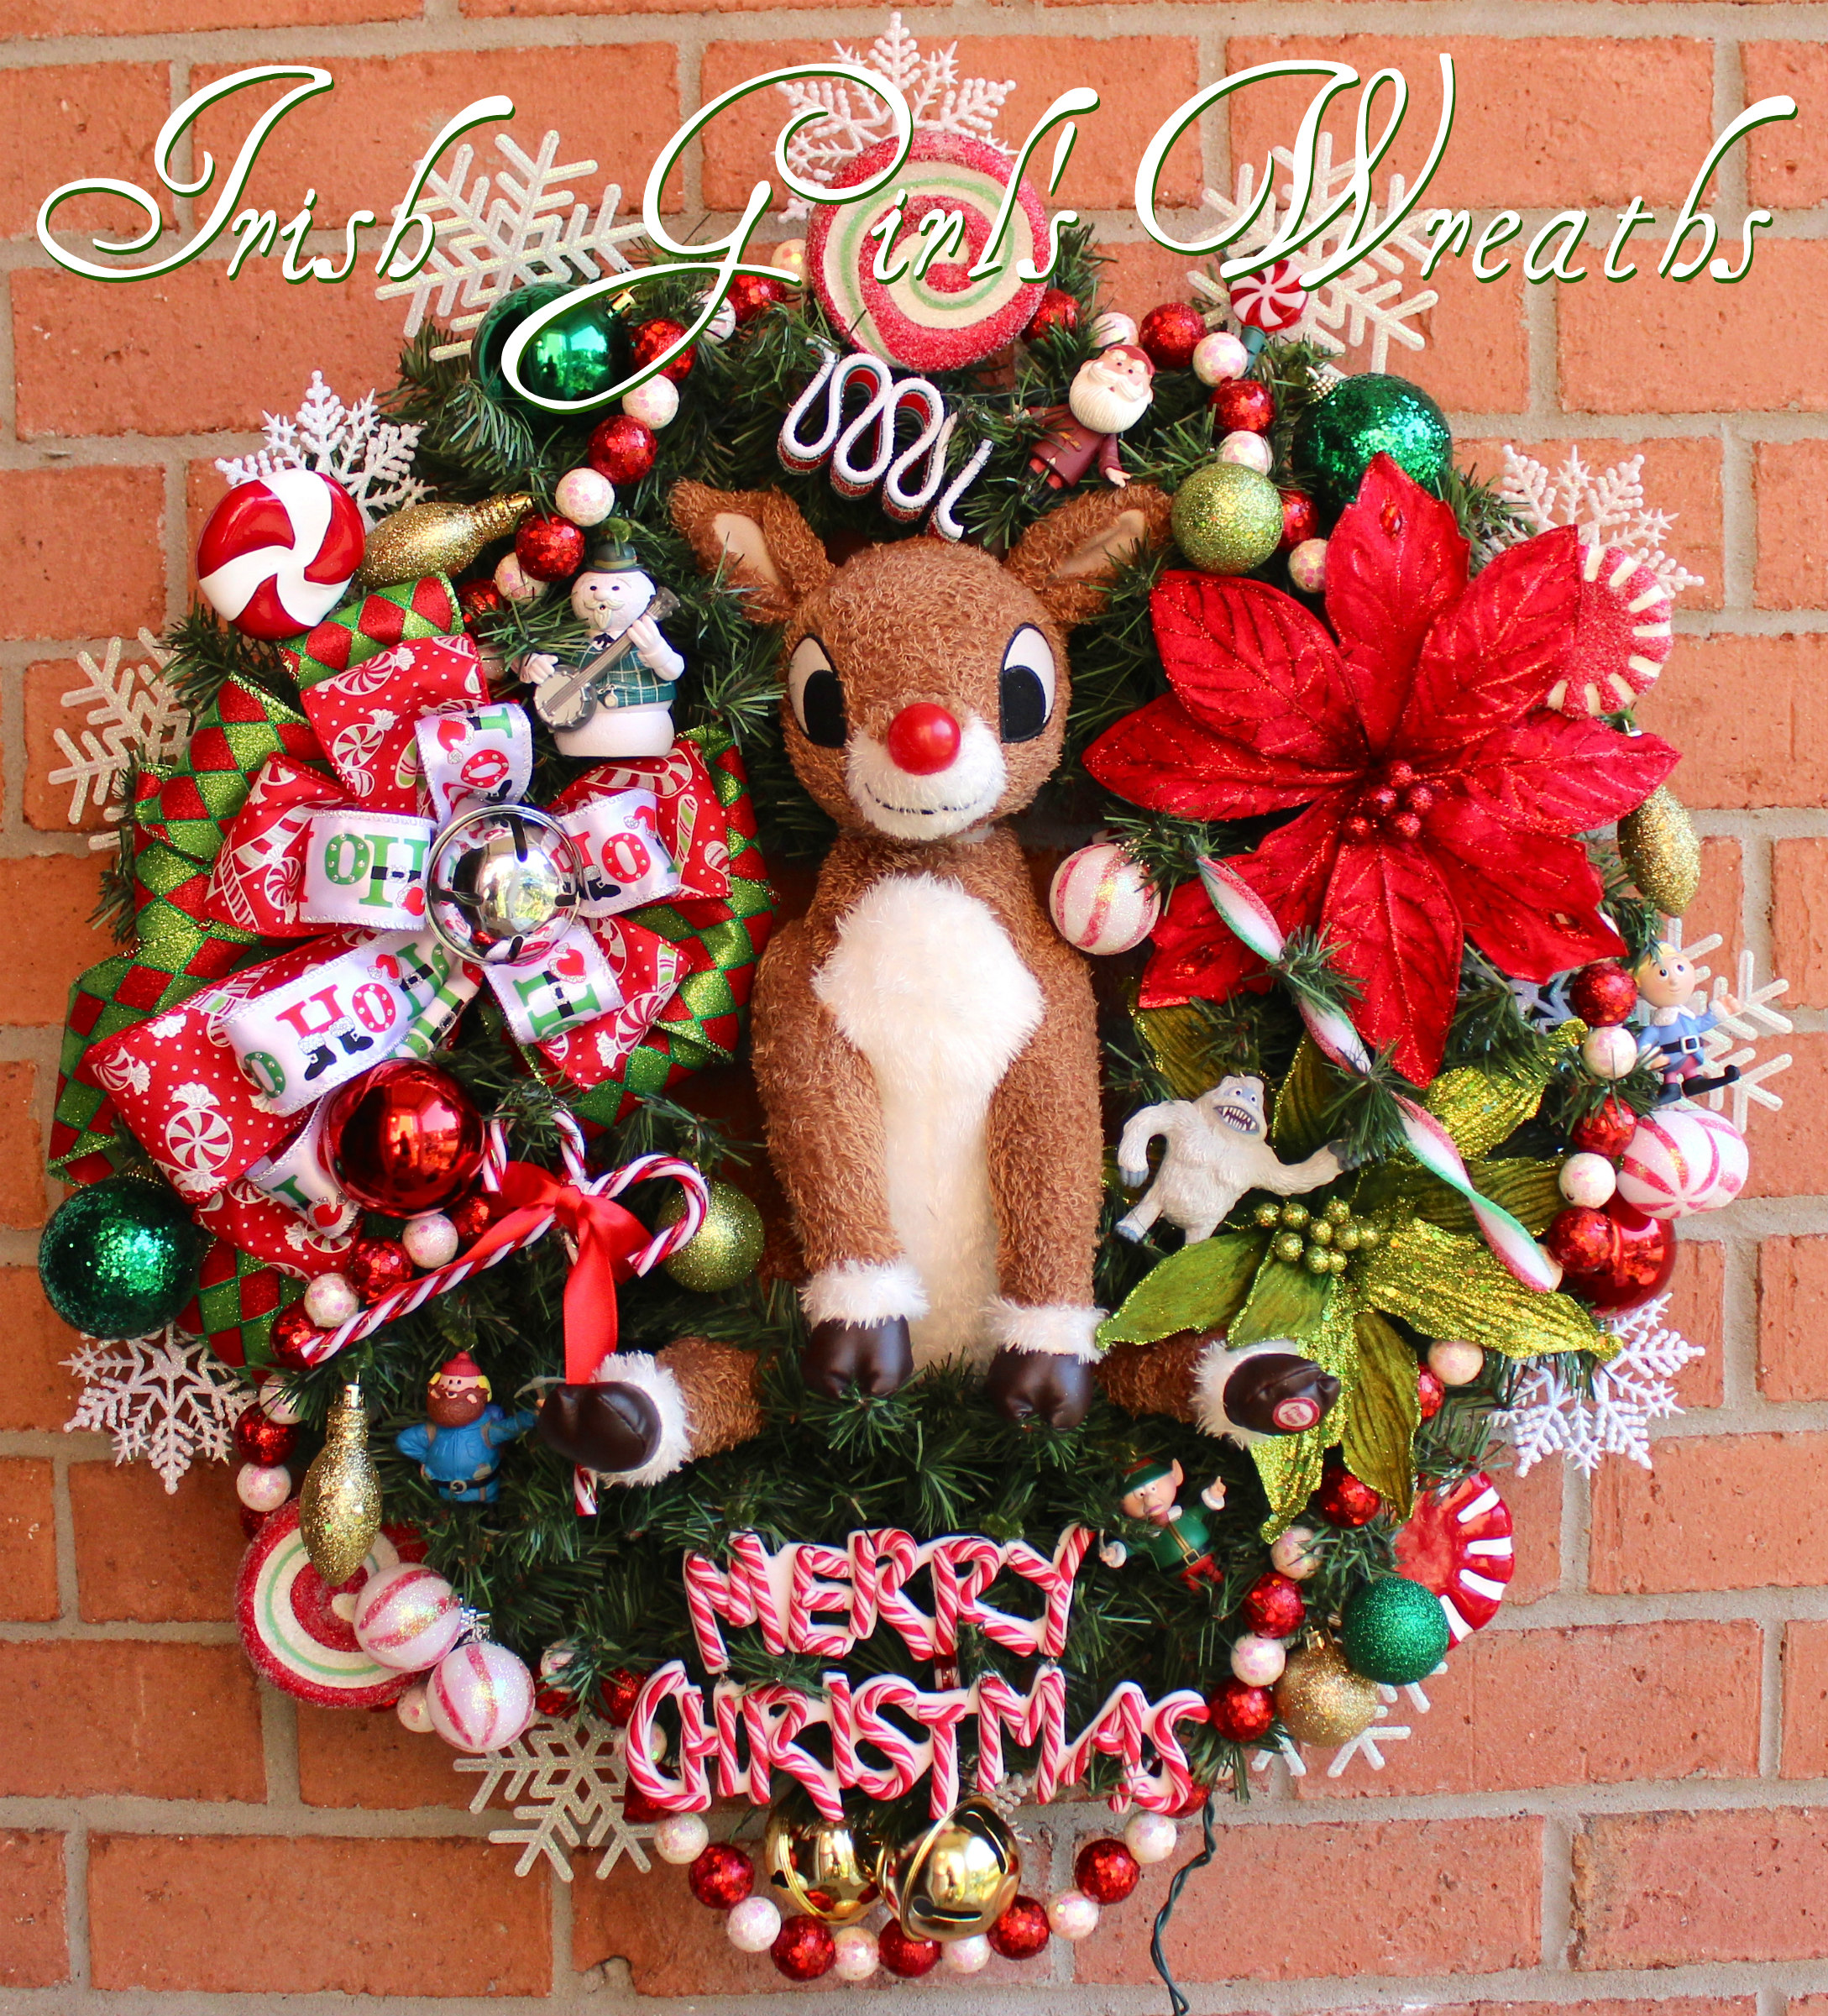 Deluxe Rudolph the Red-Nosed Reindeer Island of Misfit Toys Wreath, Custom for Joan